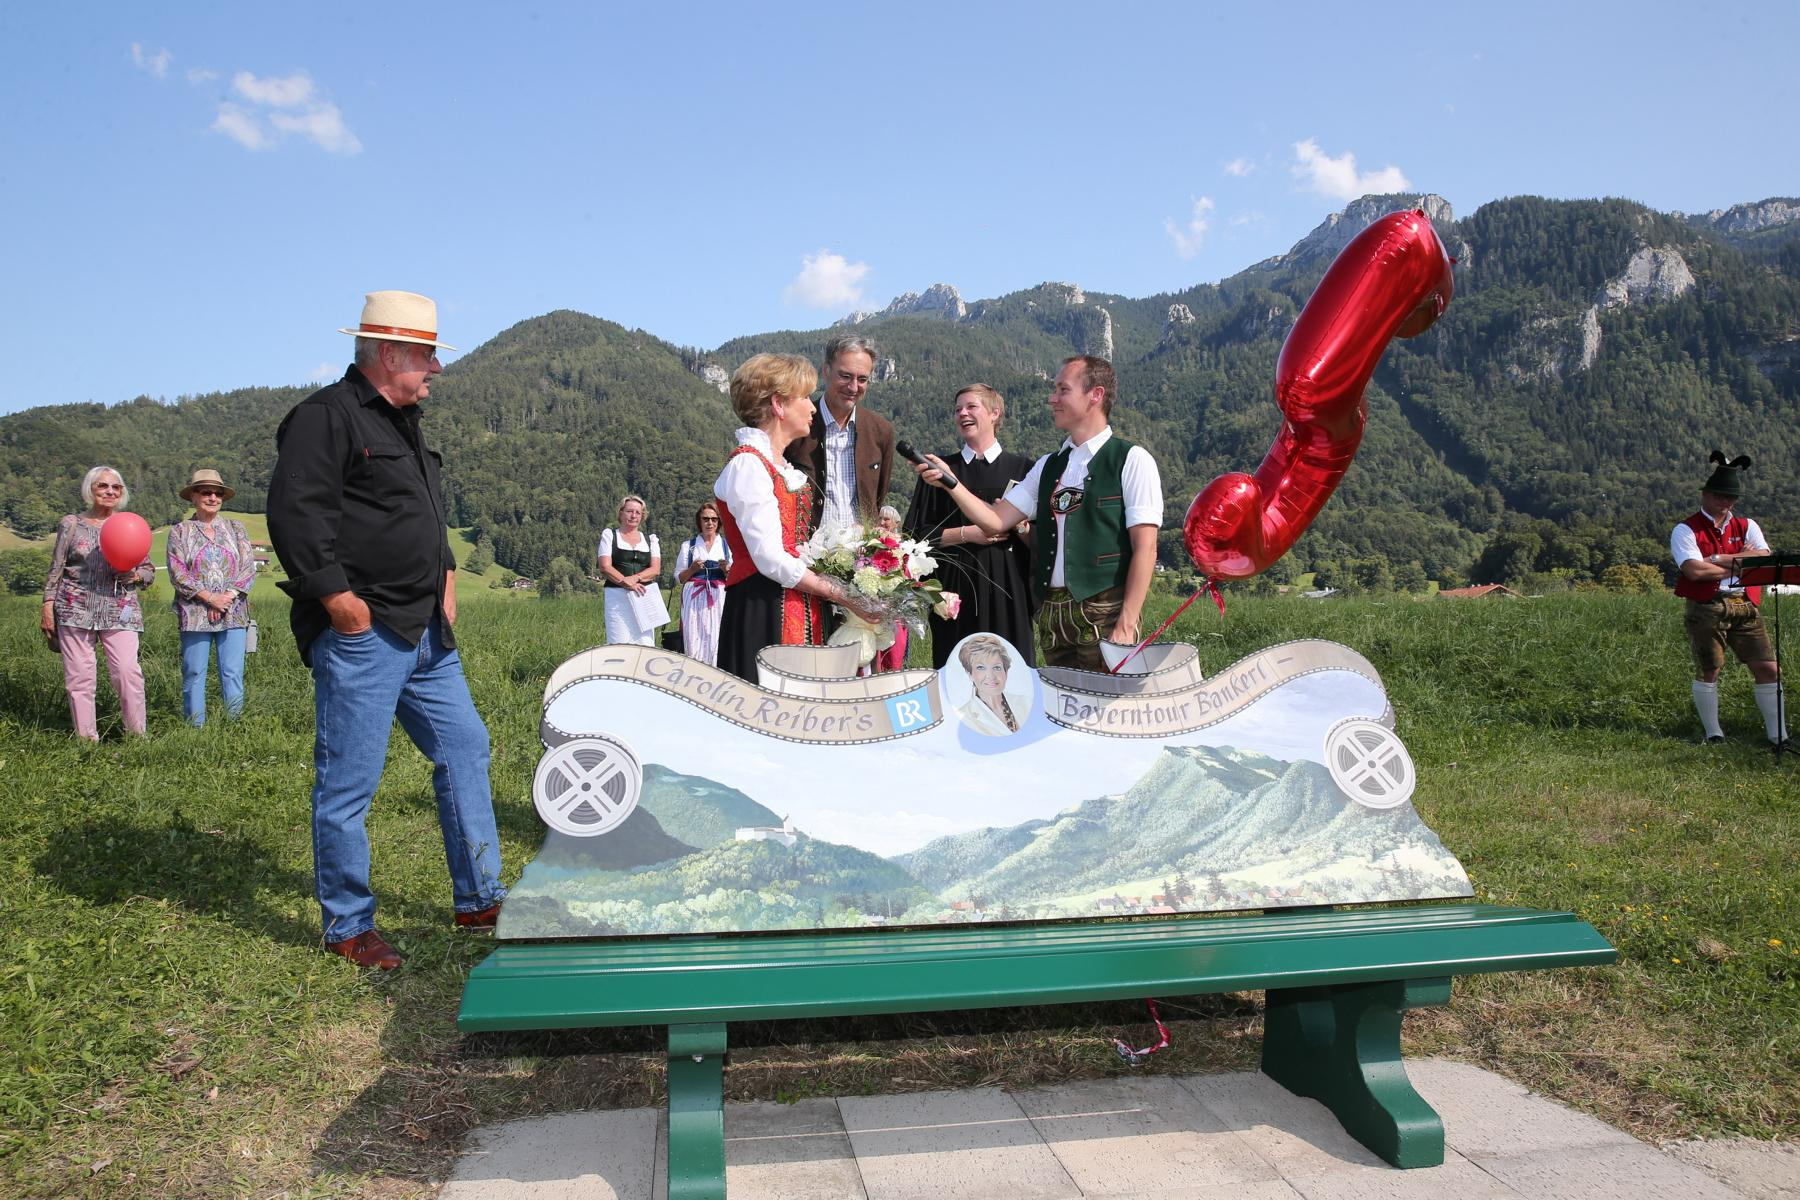 Inauguration Of Carolin Reiber's Bench In Aschau